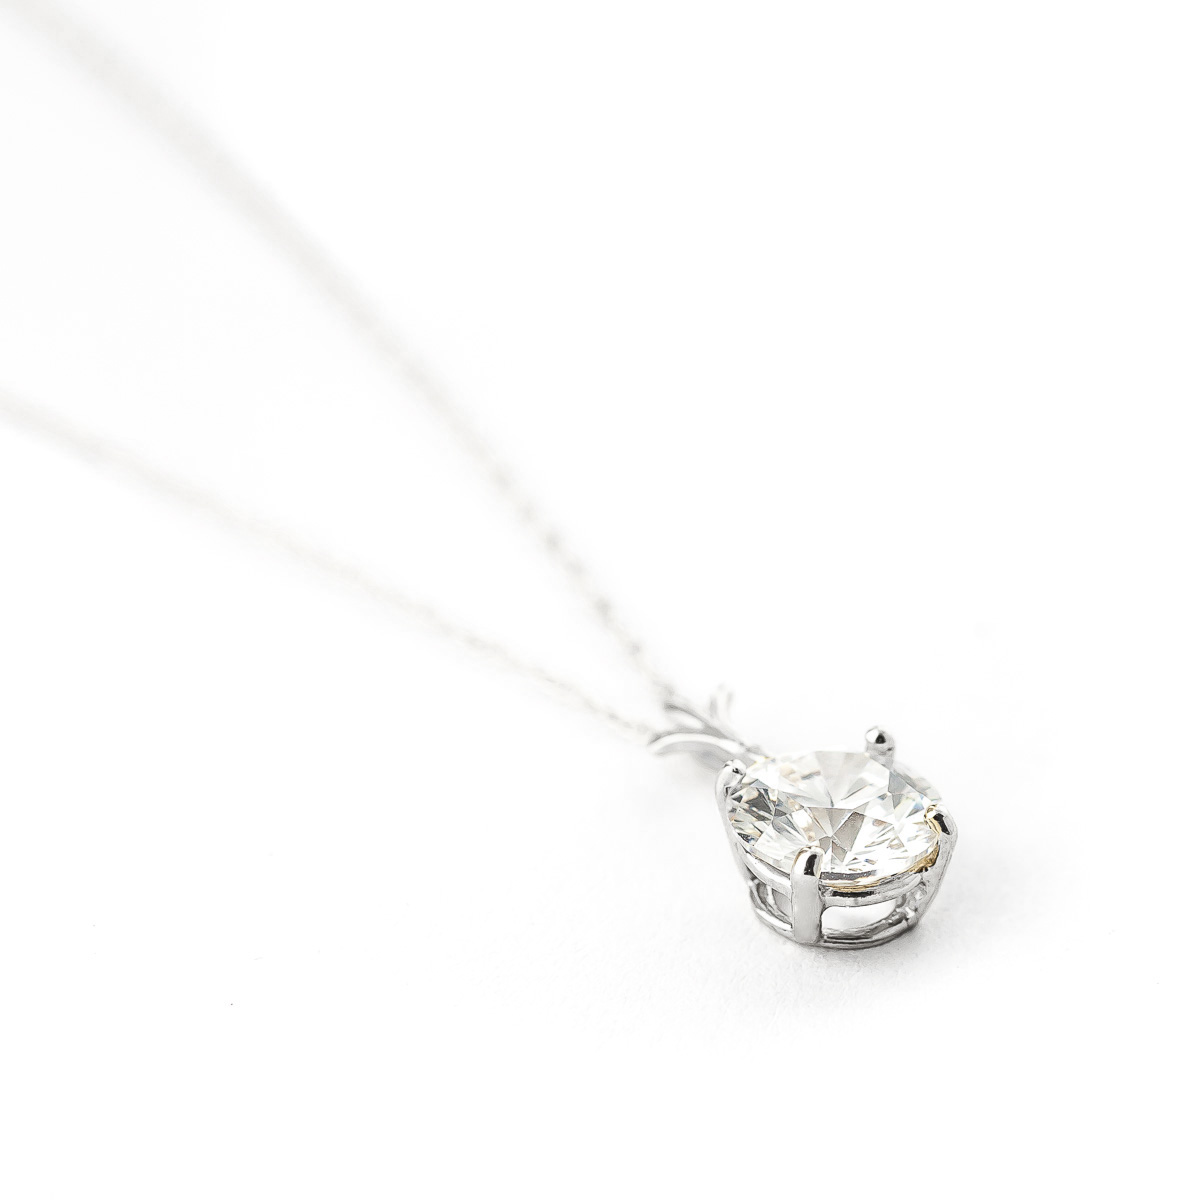 Round Brilliant Cut Cubic Zirconia Pendant Necklace 2.38ct in 9ct White Gold